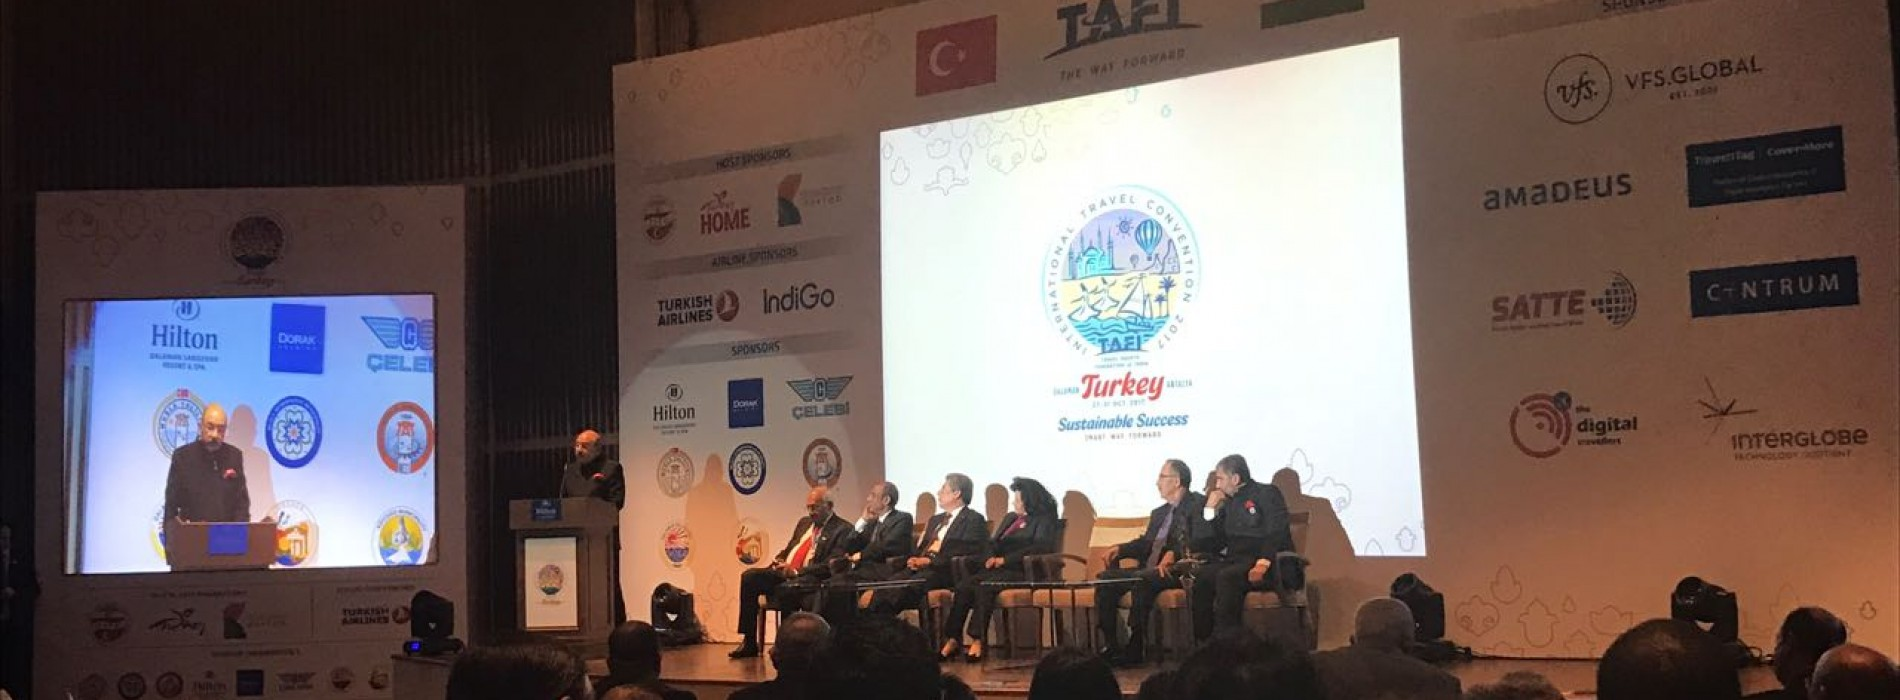 The TAFI convention starts with a focus on sustainable success